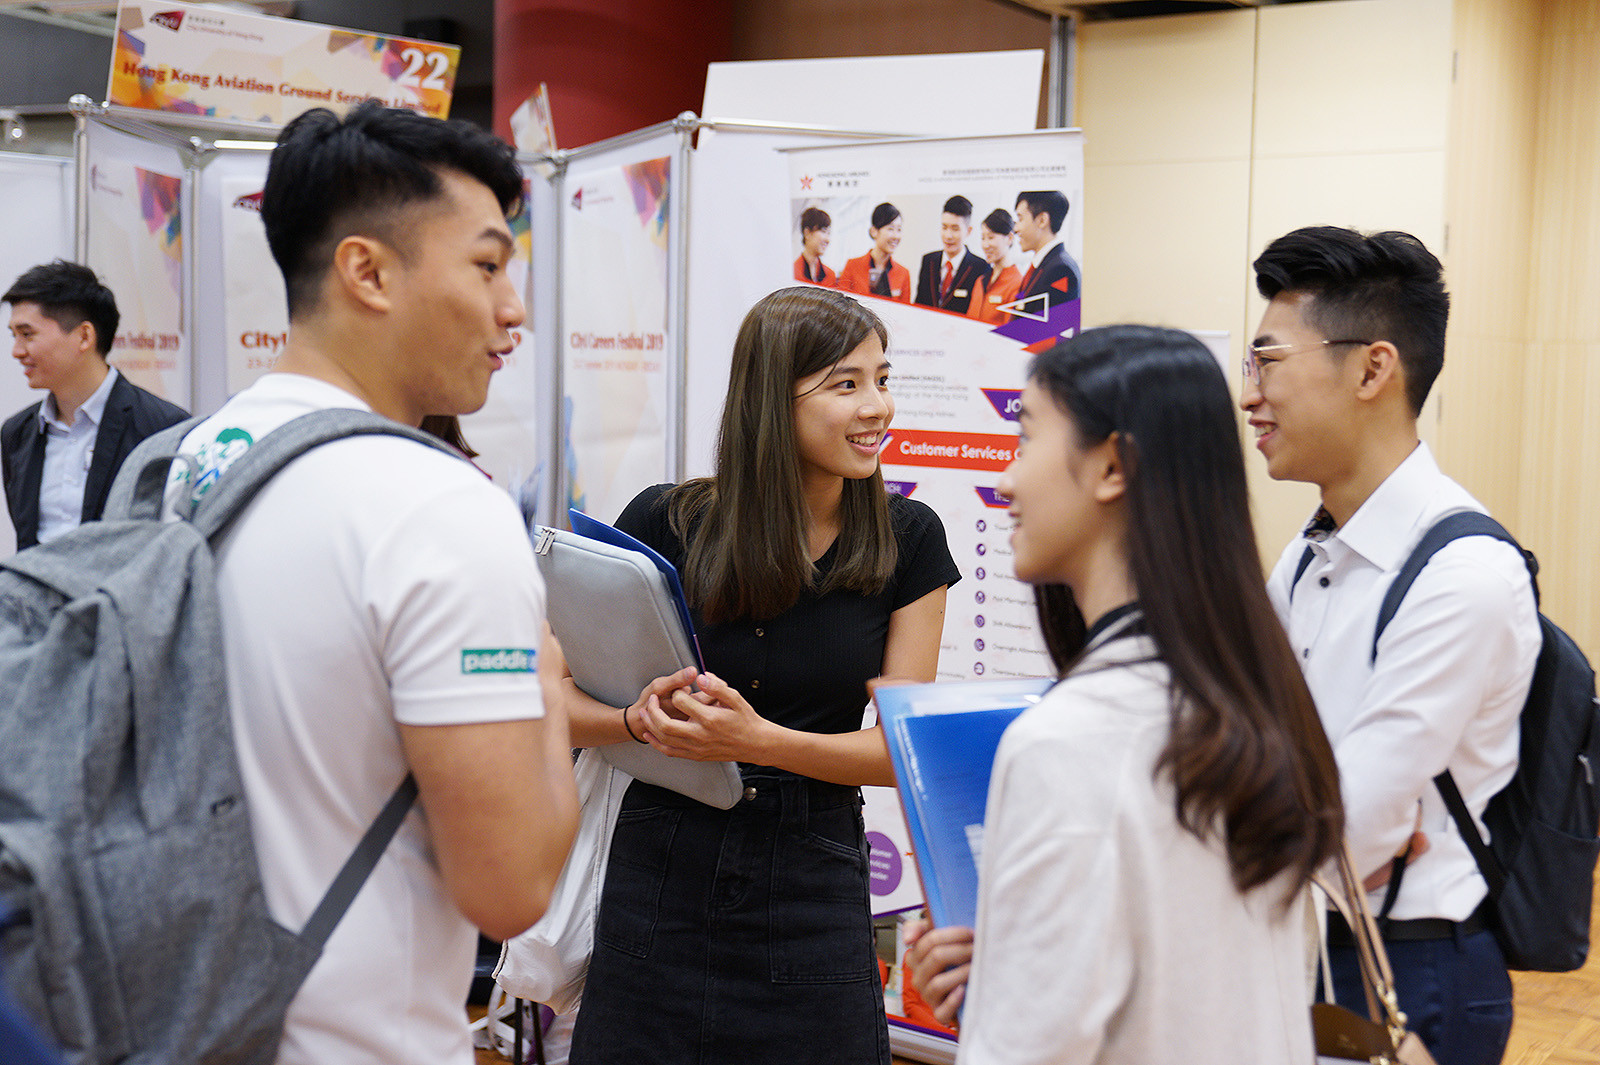 The CityU Careers Festival has featured a 3-day career expo.